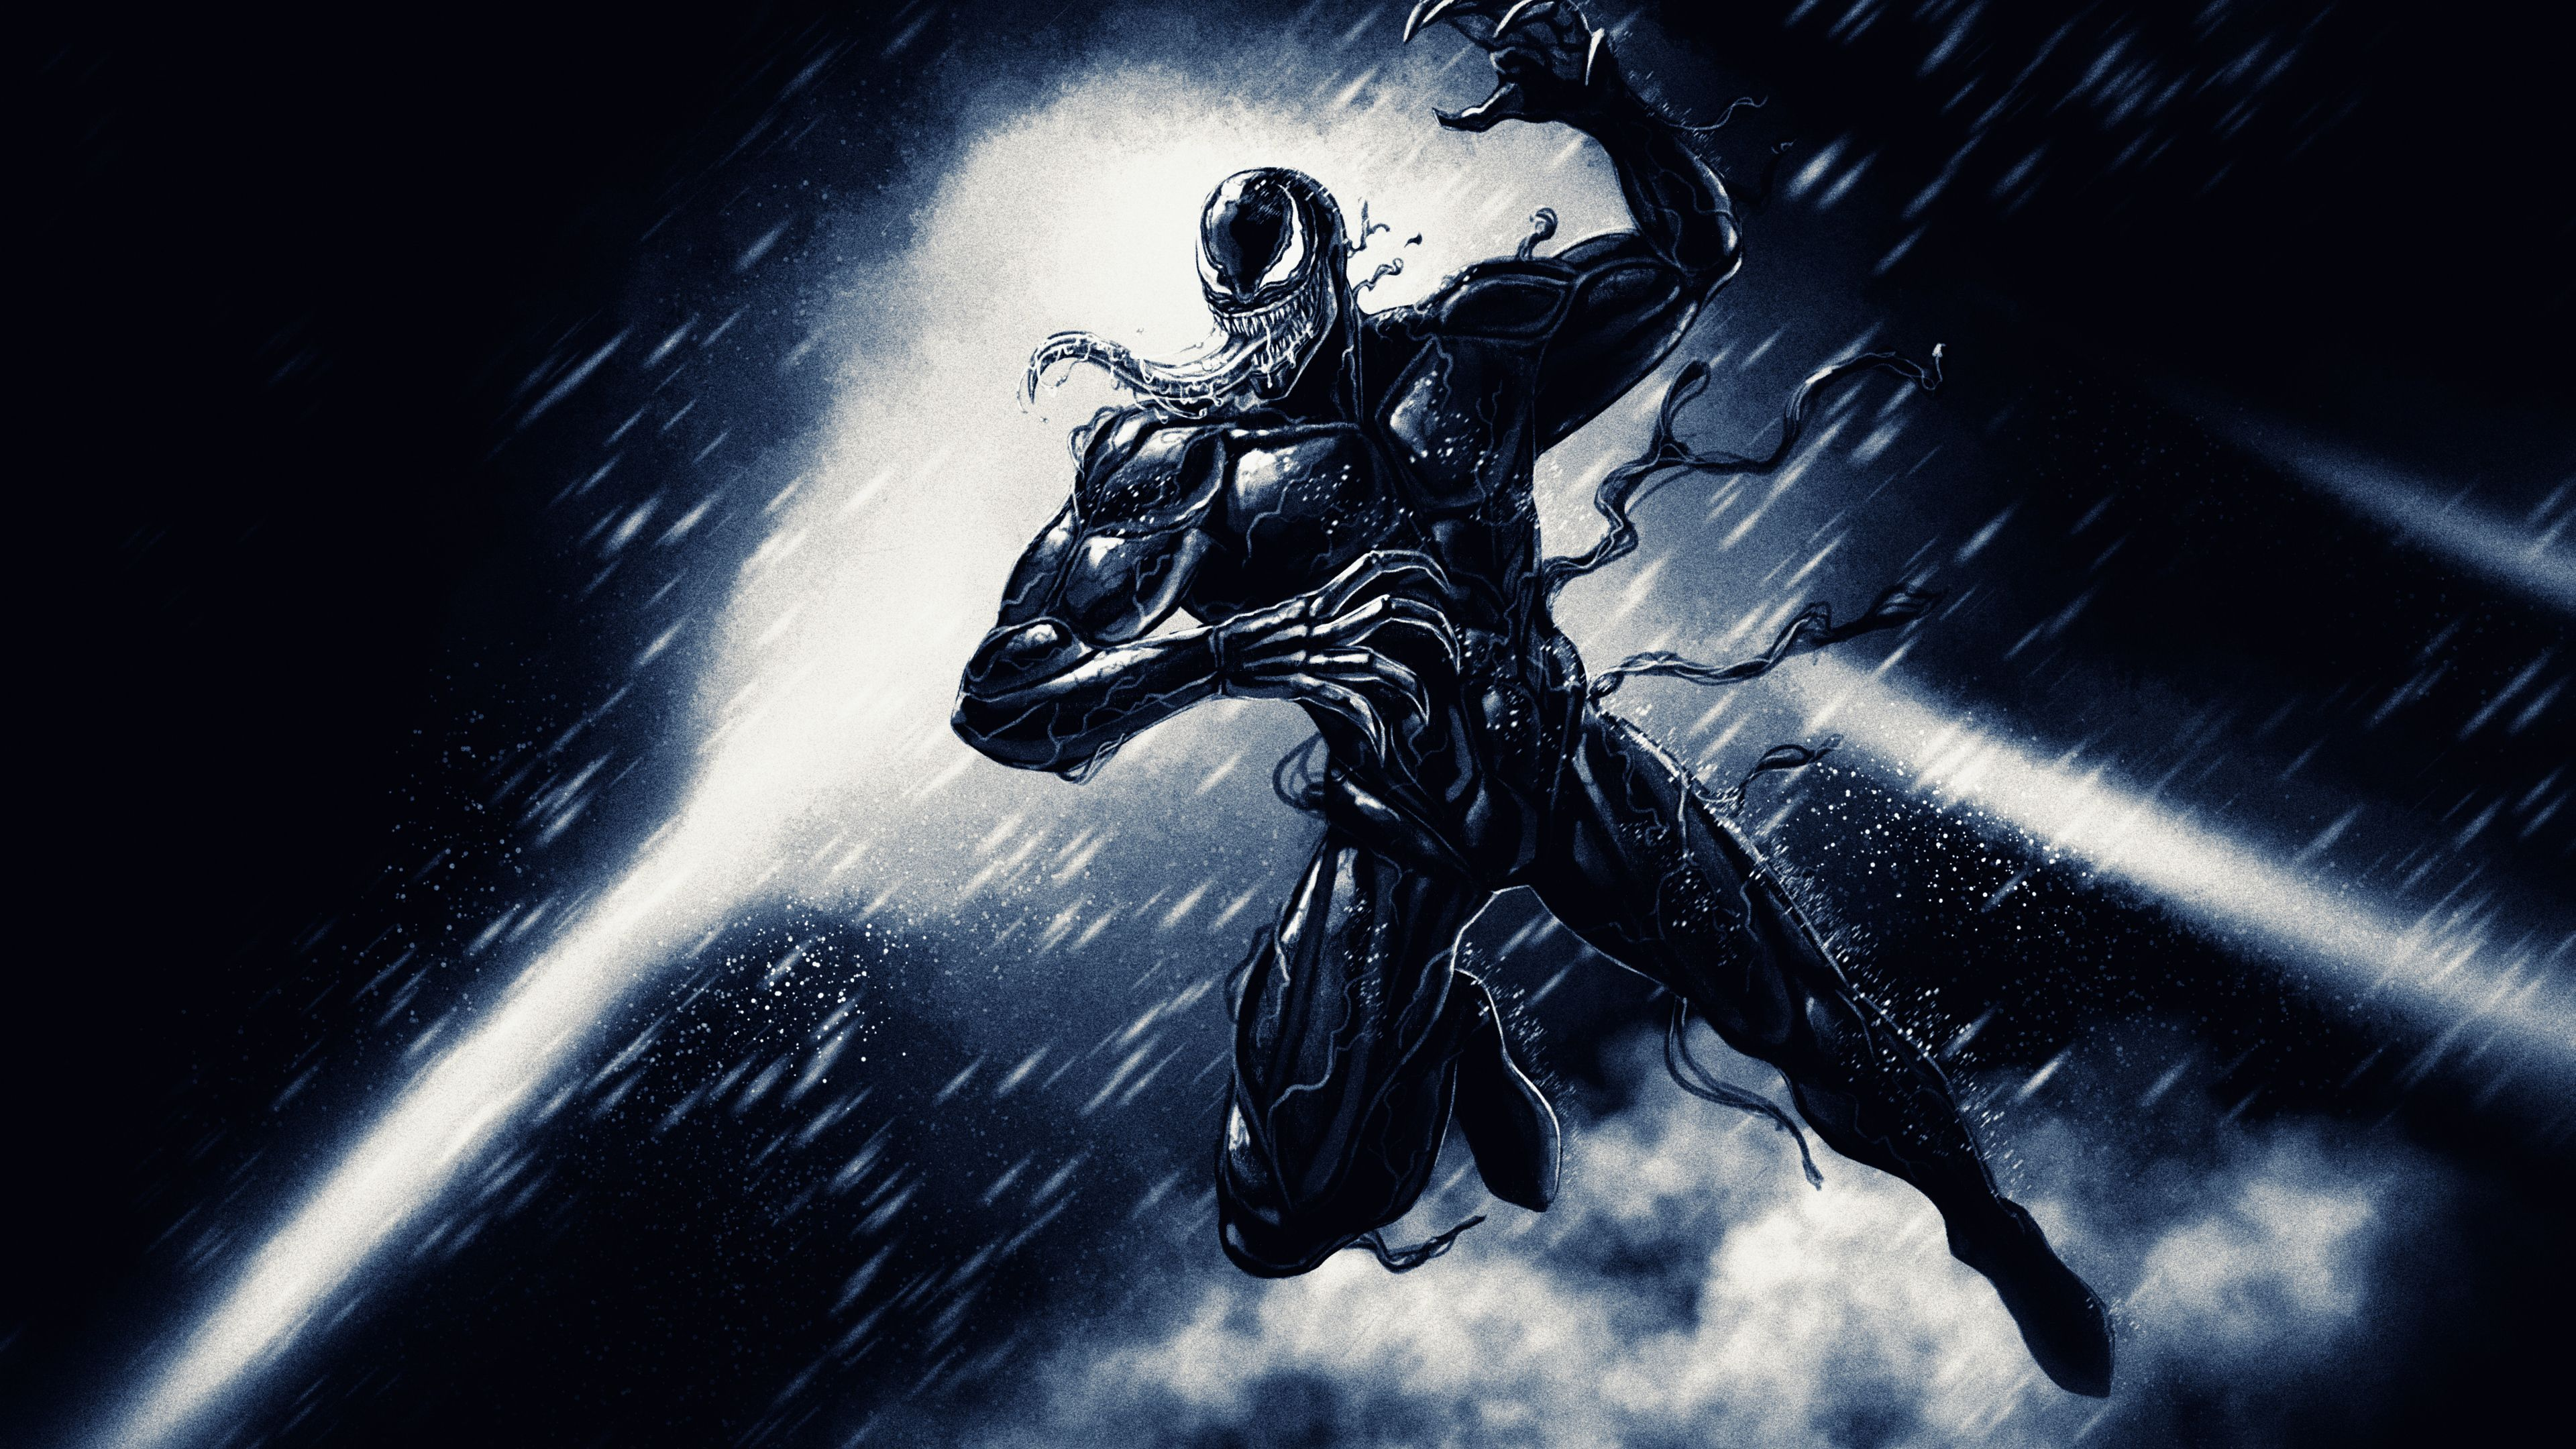 Venom 4k Artworks Venom Wallpapers Supervillain Wallpapers